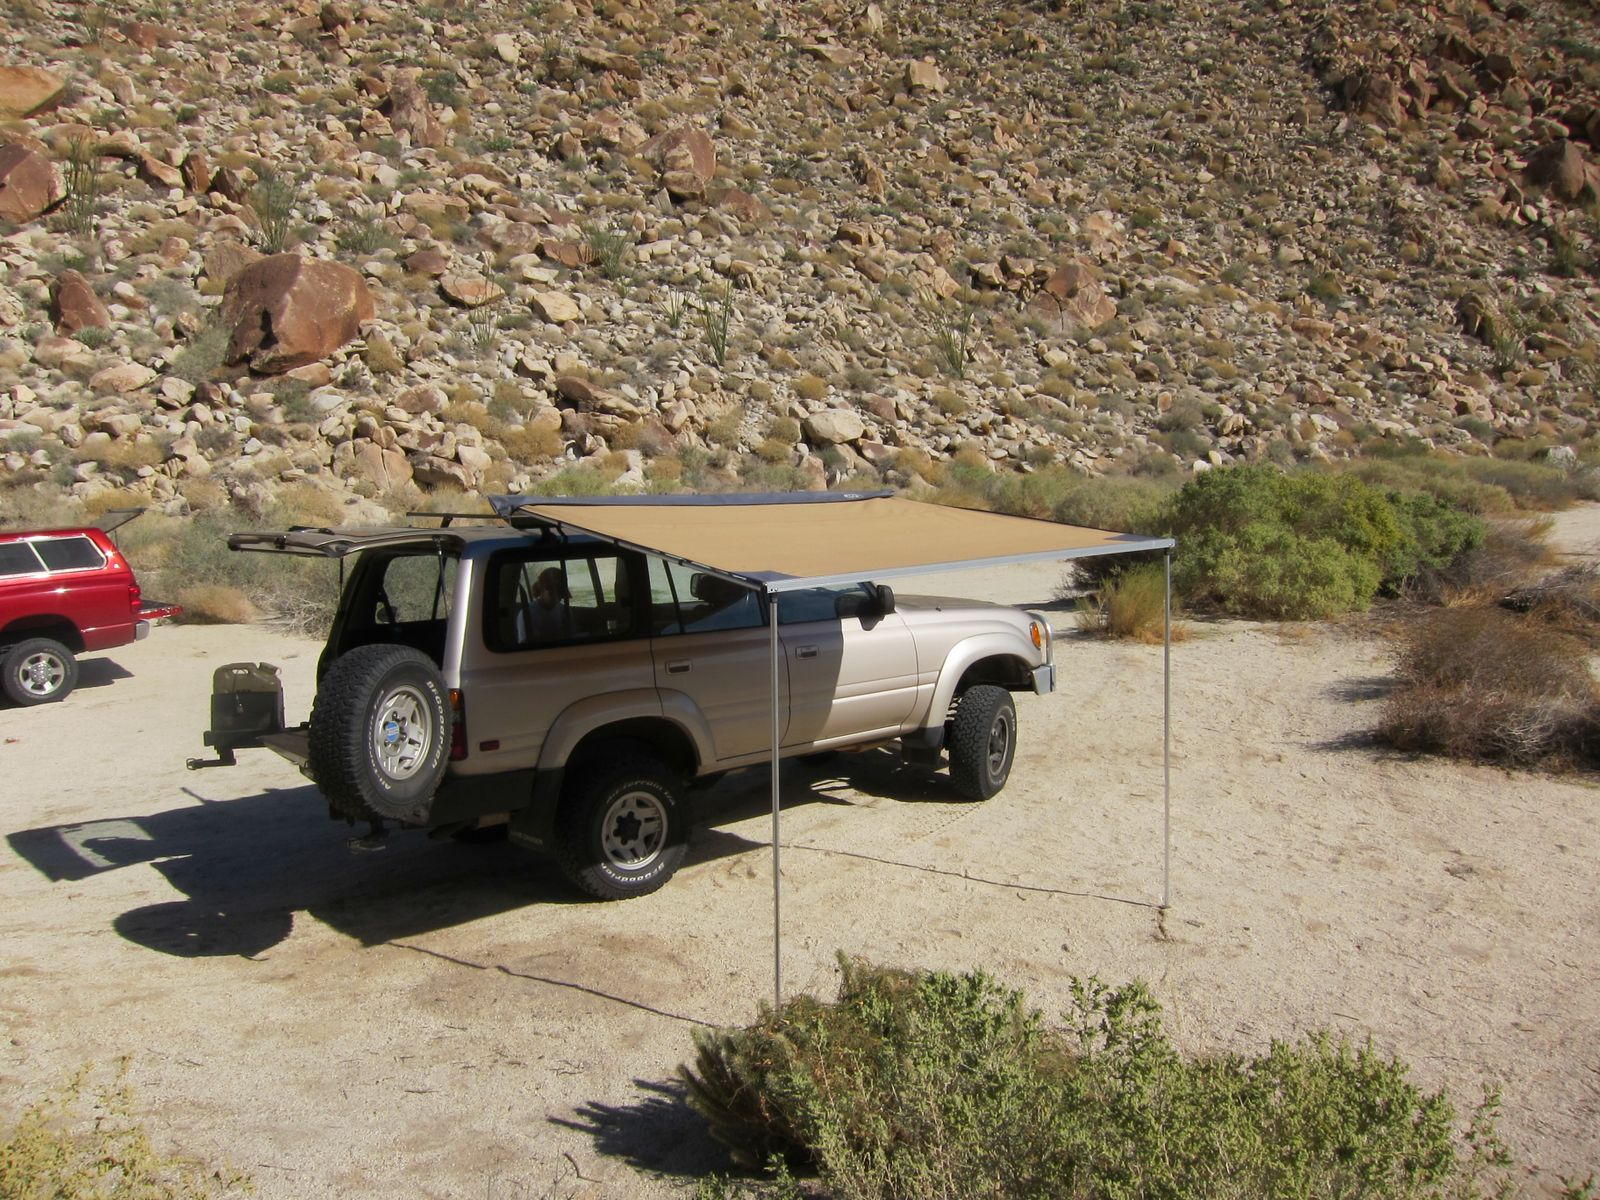 Testing out the new ARB Awning. This accessory was made for the desert :-)